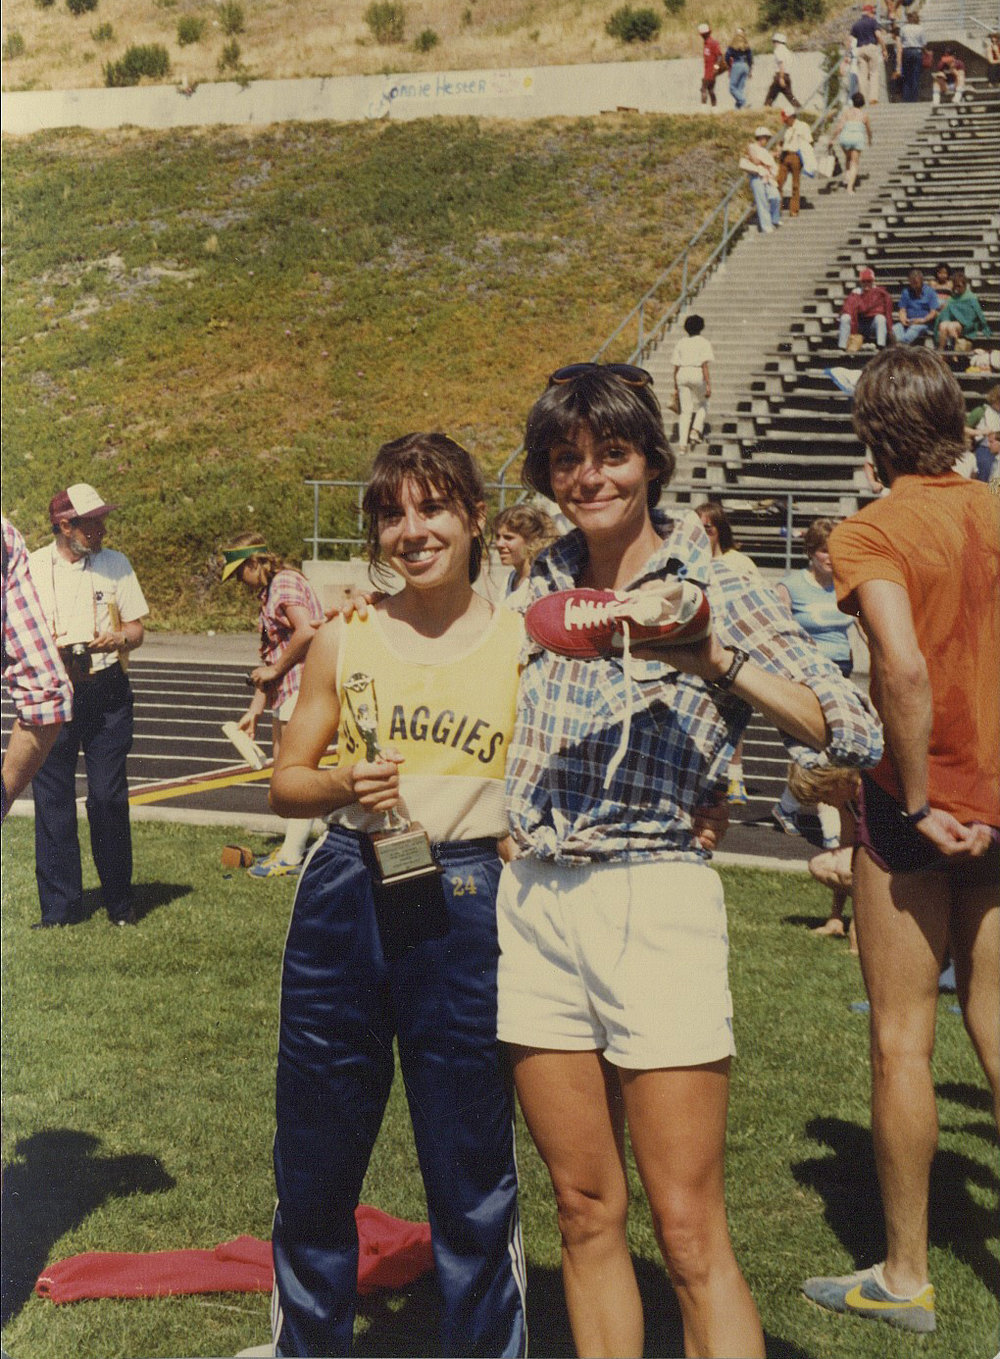 Patti with Coach Sue Miller - AIAW Nationals - 2nd Place 3000m - 1981